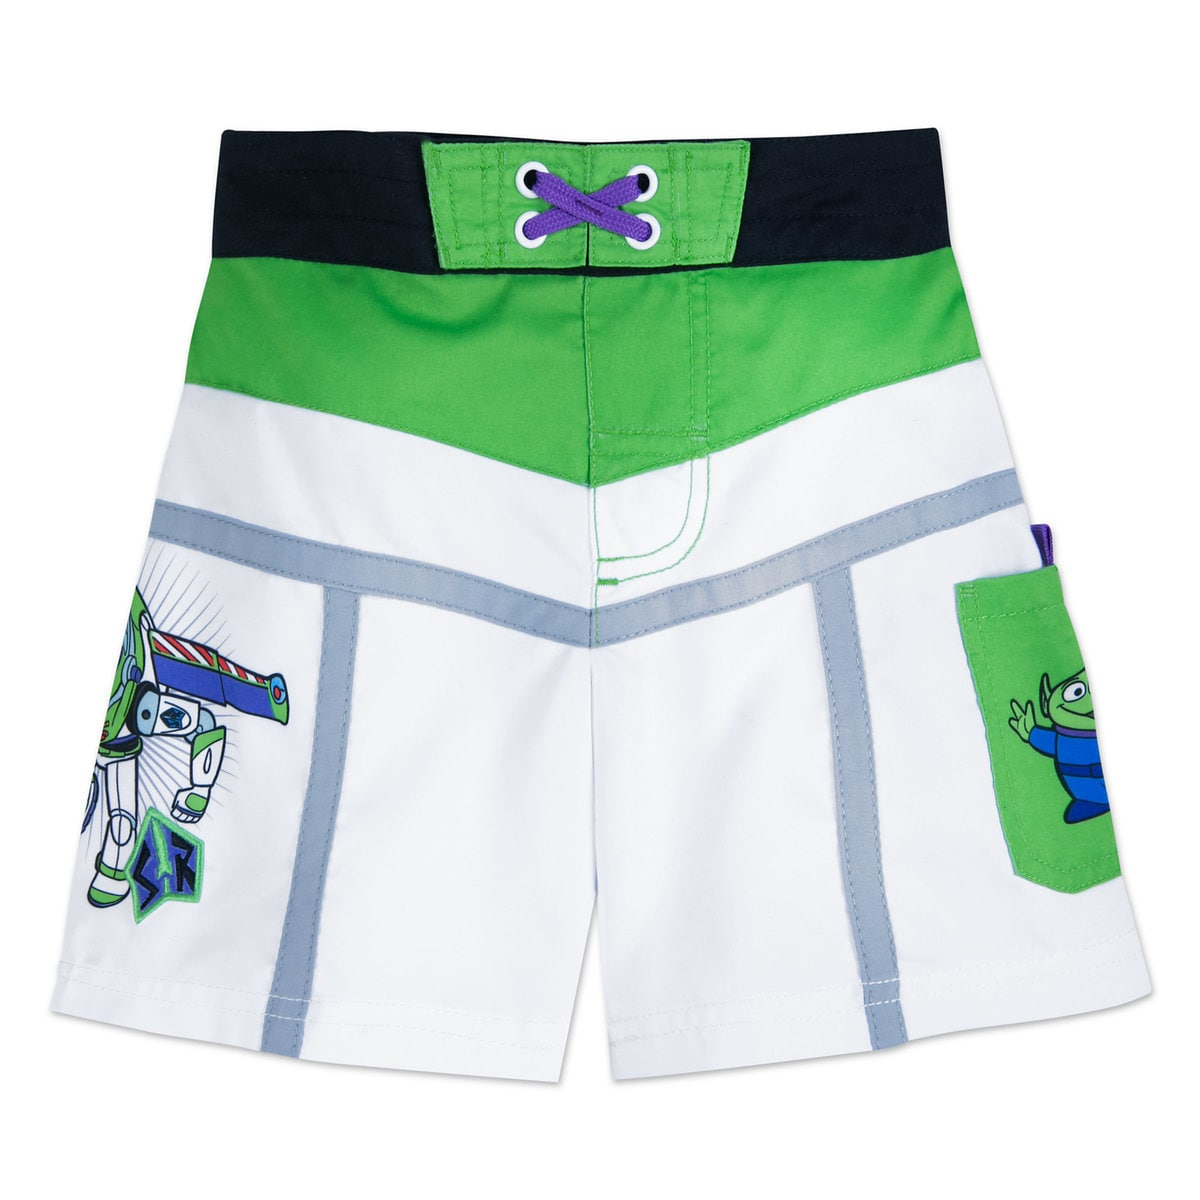 faa2ab044d Product Image of Buzz Lightyear Swim Trunks for Kids # 1